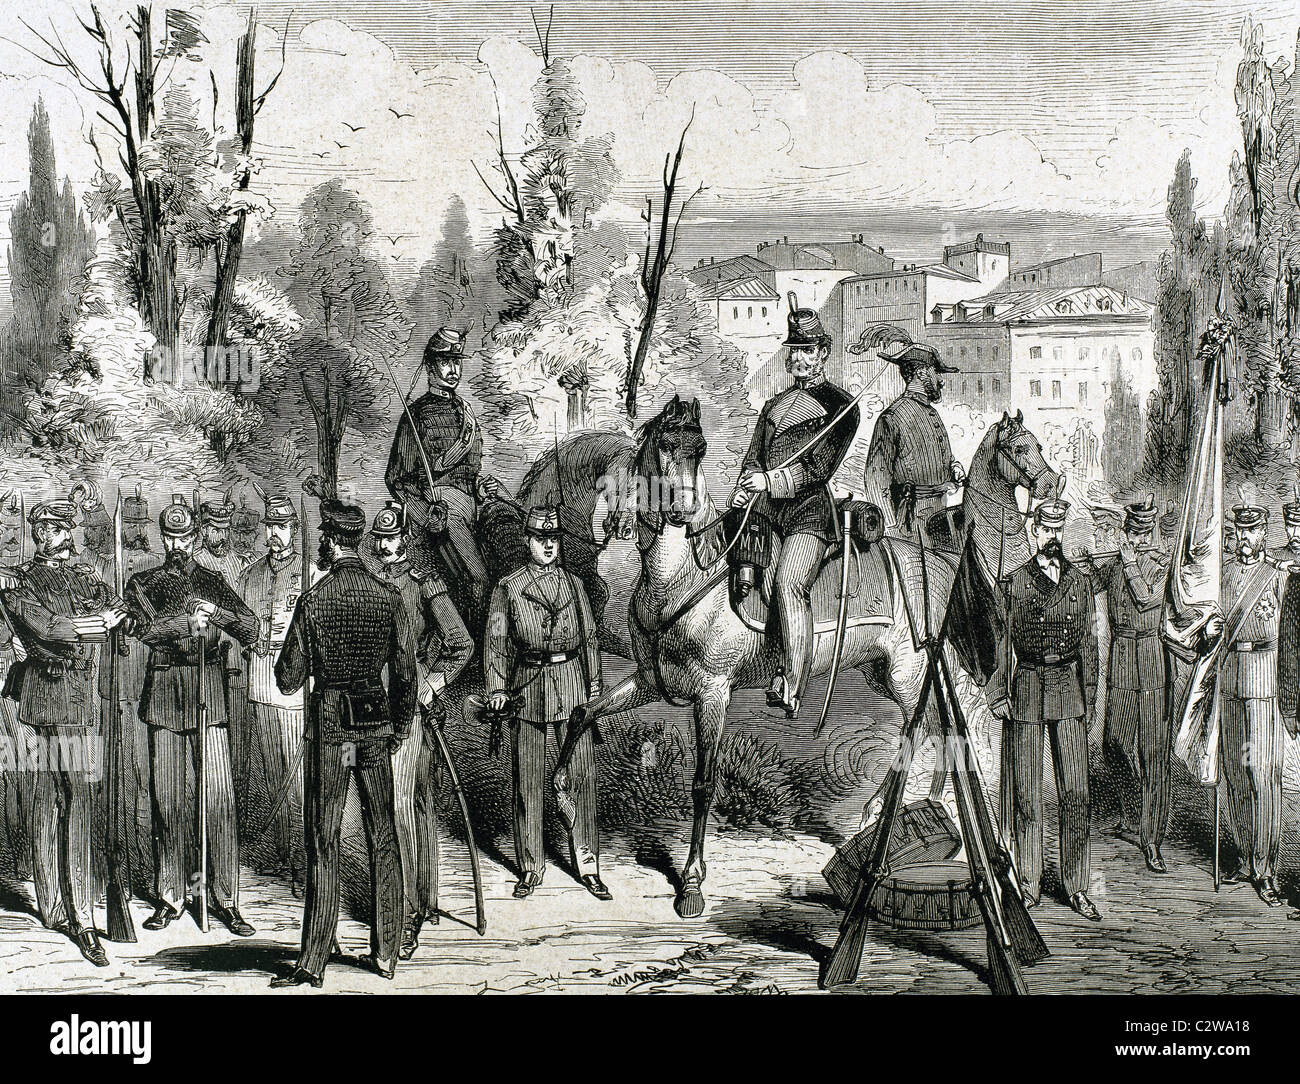 National Militia. 'The Spanish and American Illustration, ' 1872. Engraving. - Stock Image